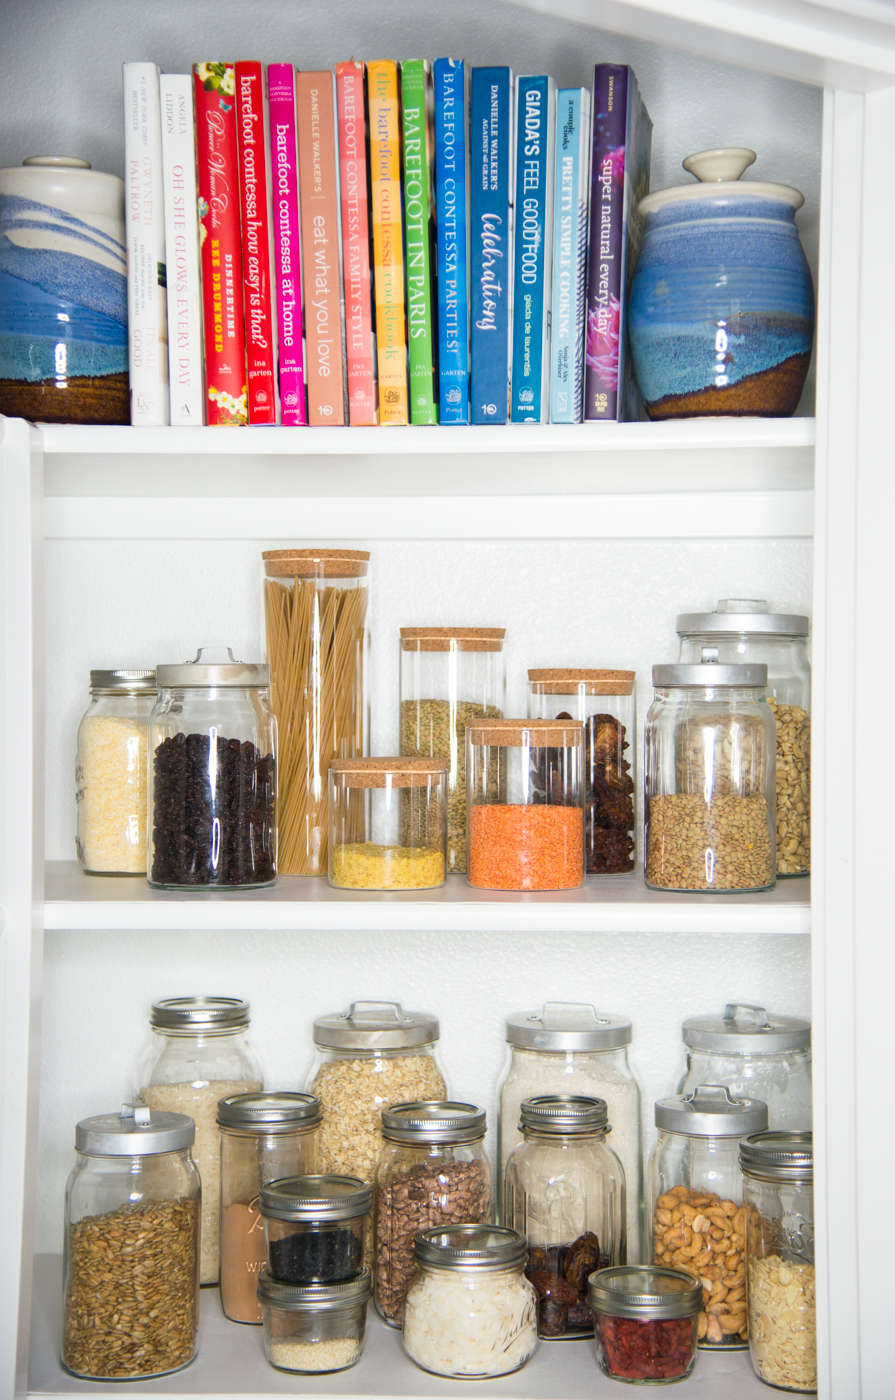 Are you ready to declutter?  To tackle the pantry and fridge, those two problem areas that cause all the kitchen chaos? This is everything you need to know to declutter your fridge and pantry, step-by-step. #realfoodwholelife #simplifedhome #simplify #organize #pantry #fridge #cleanhome #meal planning #declutter #minimal